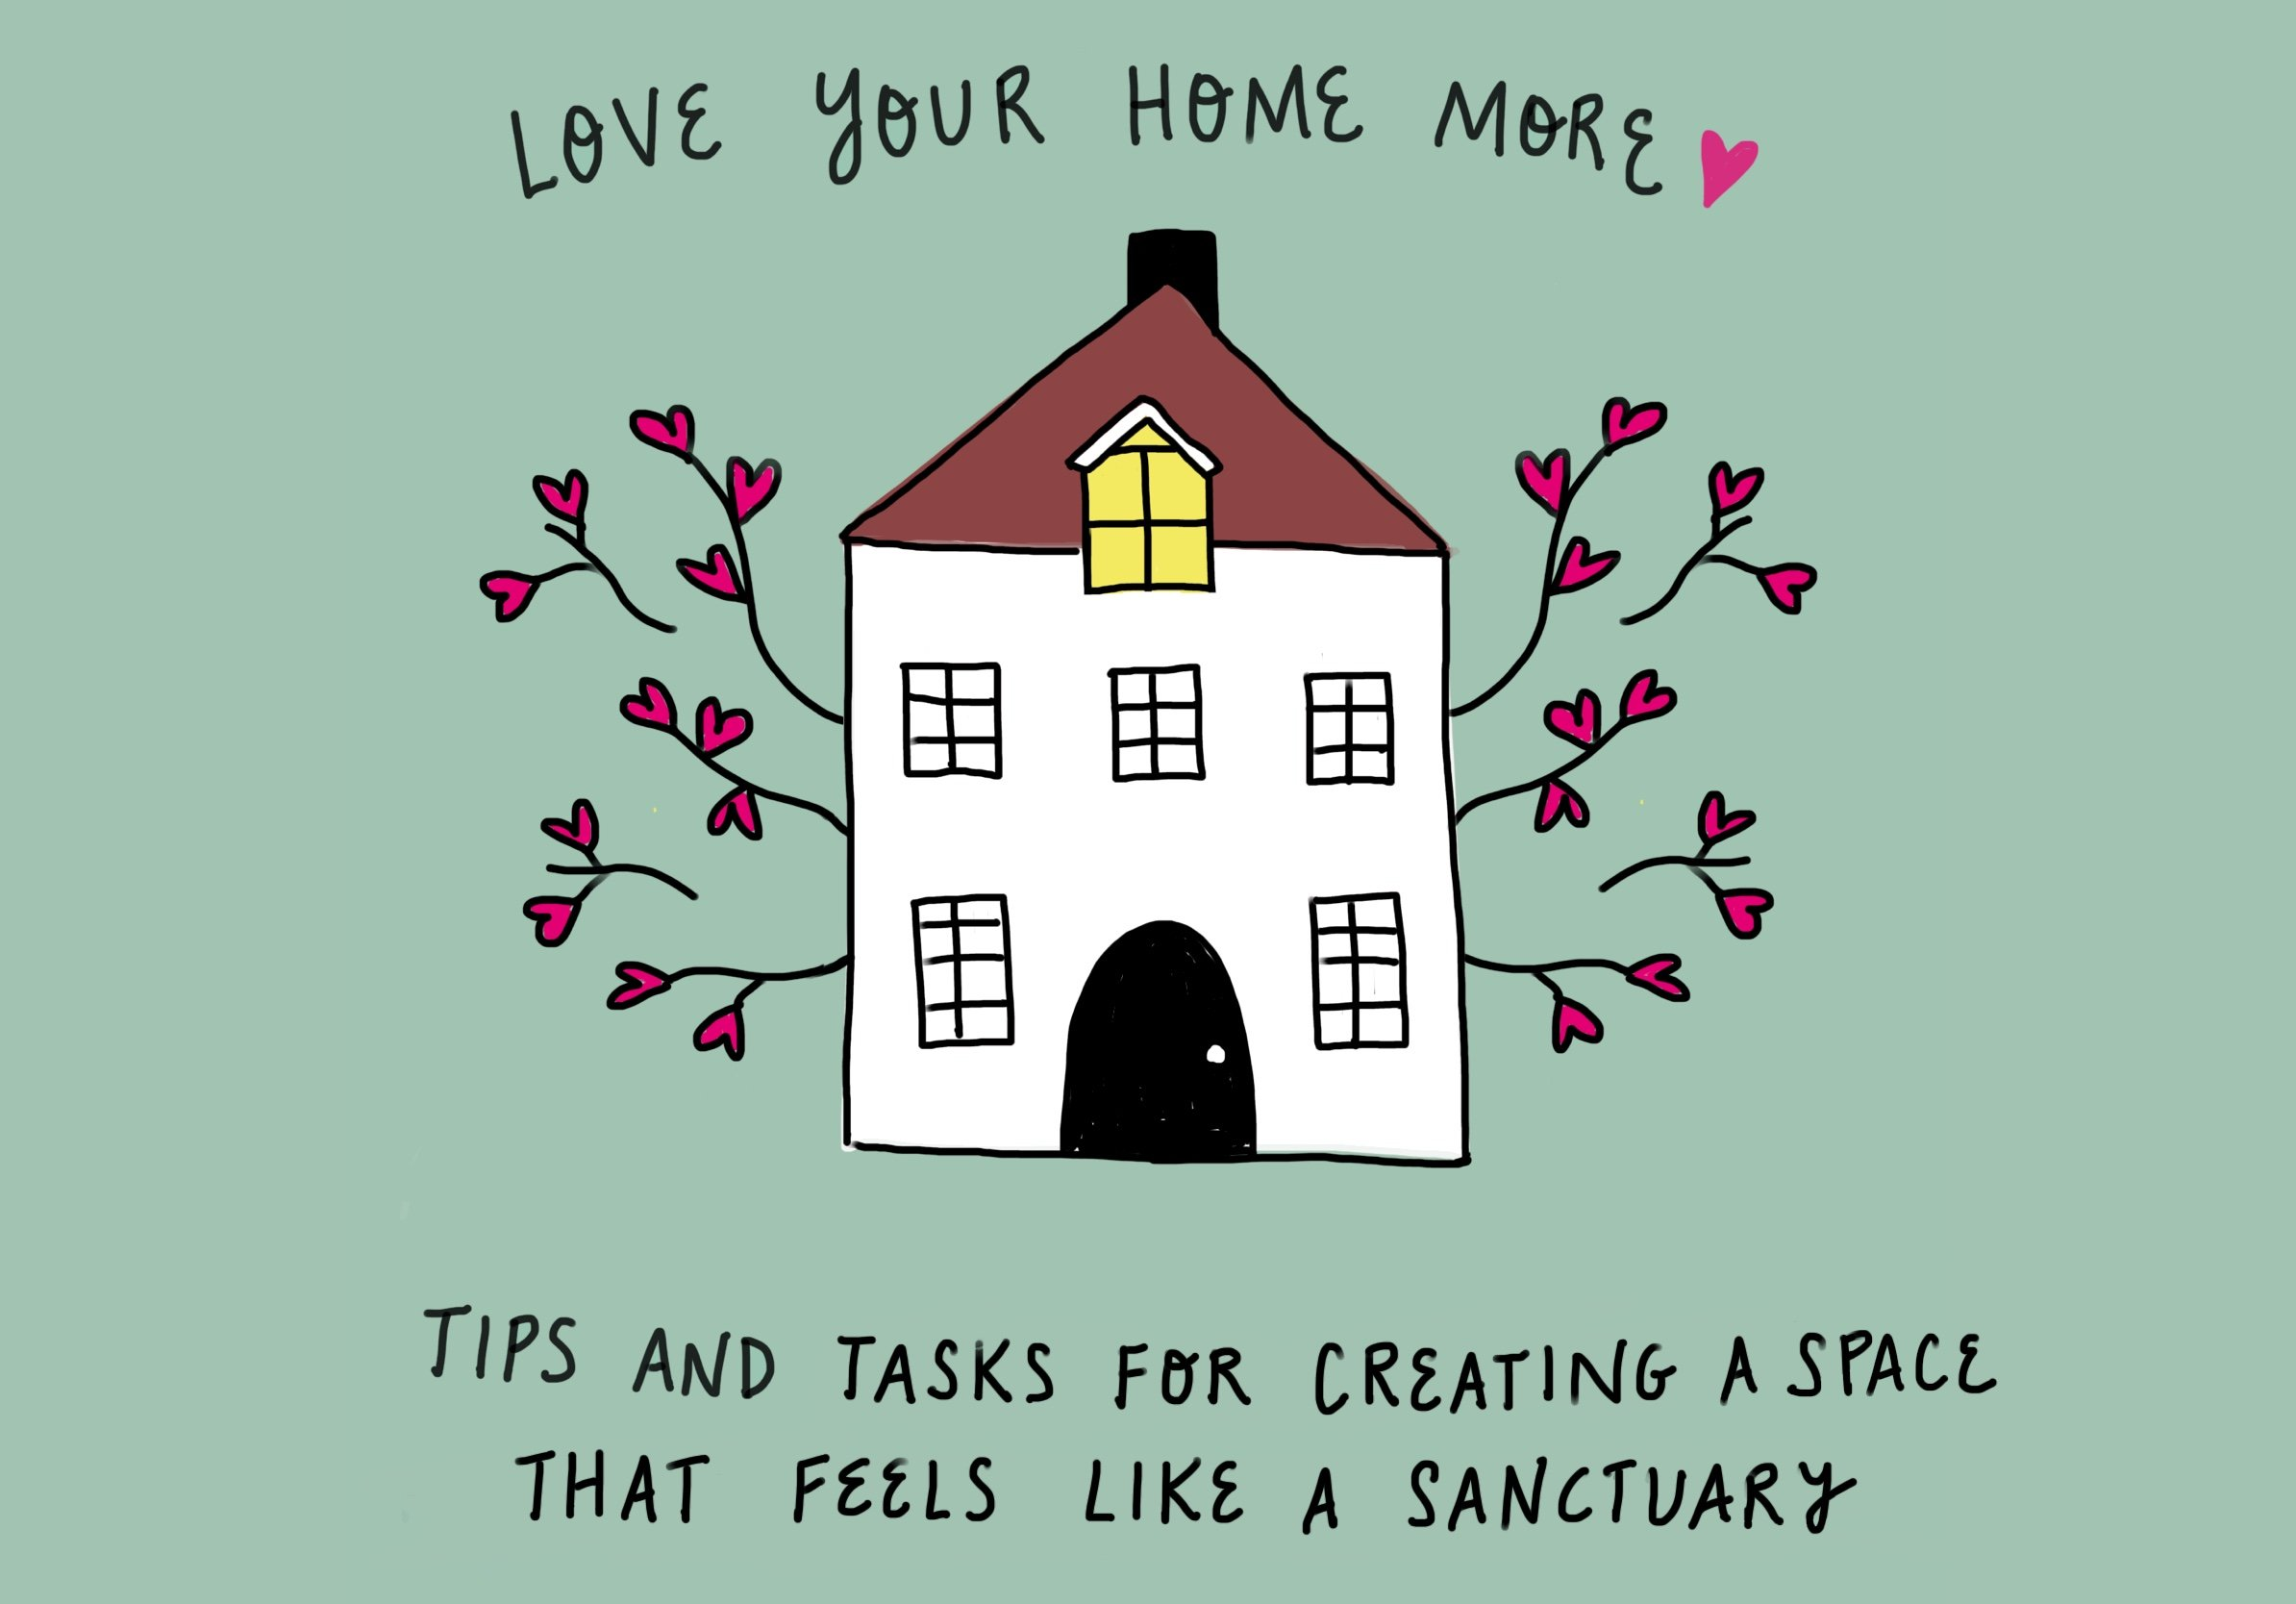 Love your home more: tips and tasks for creating a space that feels like a sanctuary by feelgood fibers